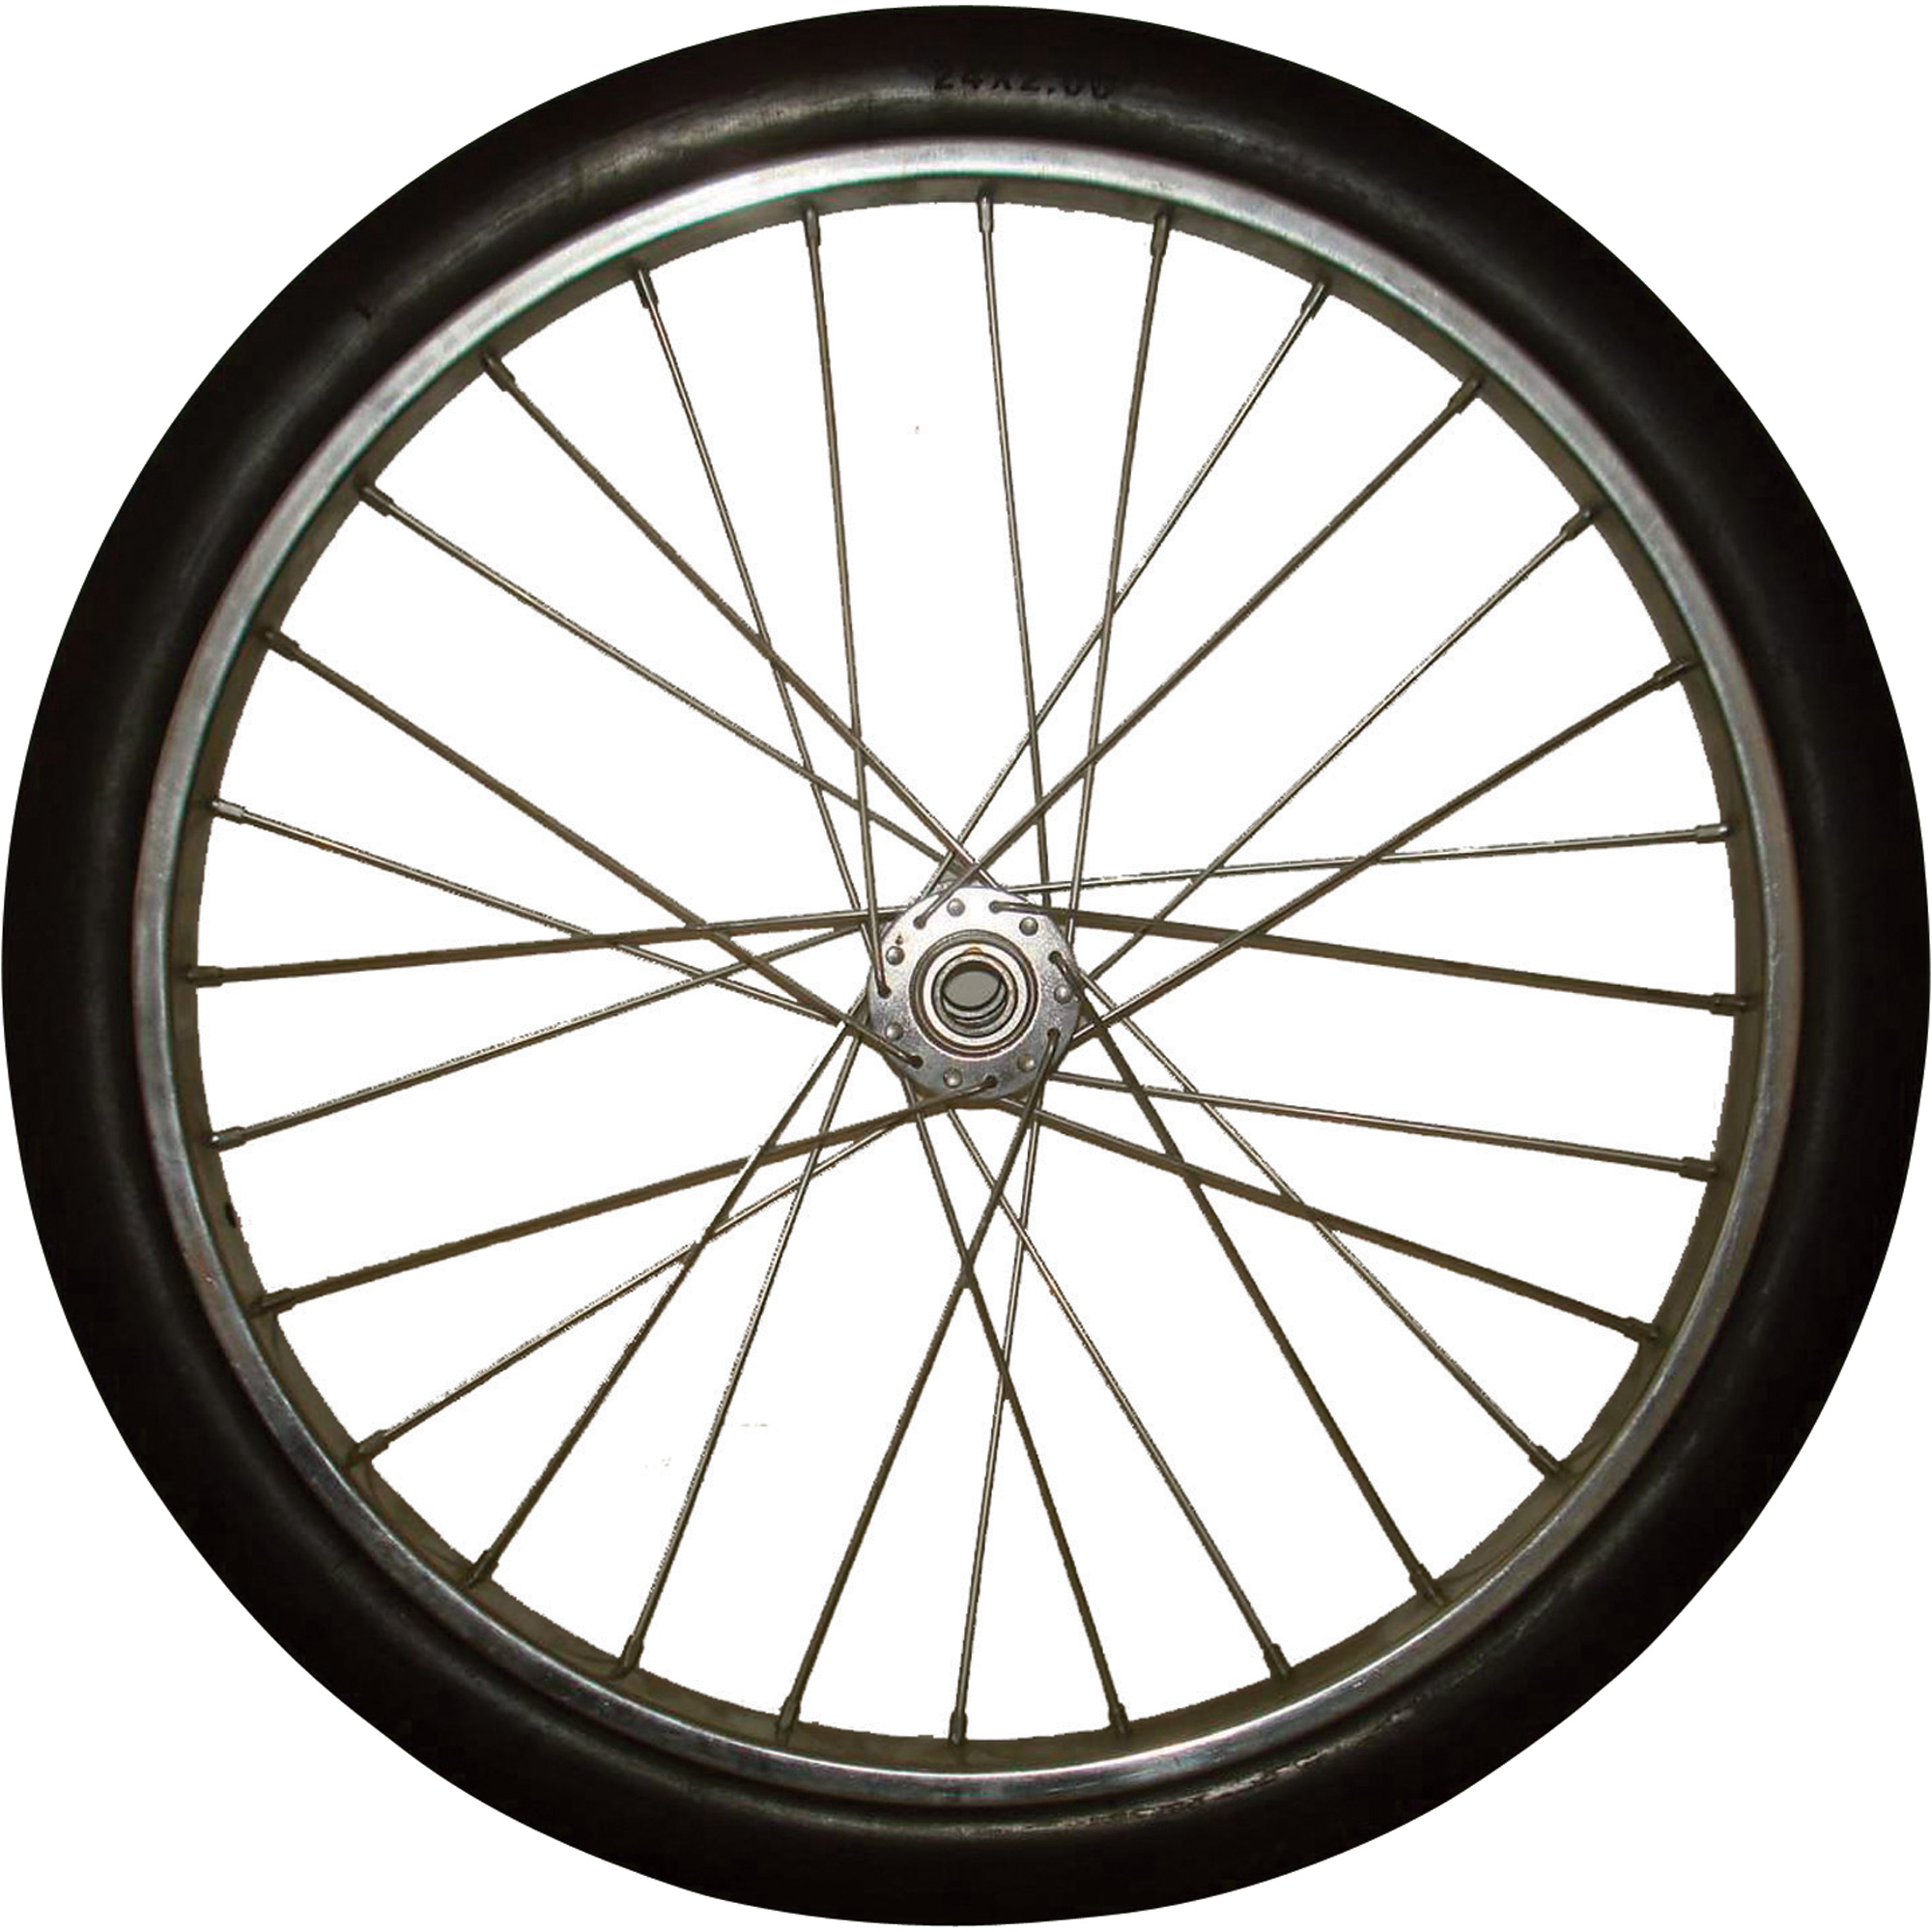 Wheel Backgrounds on Wallpapers Vista